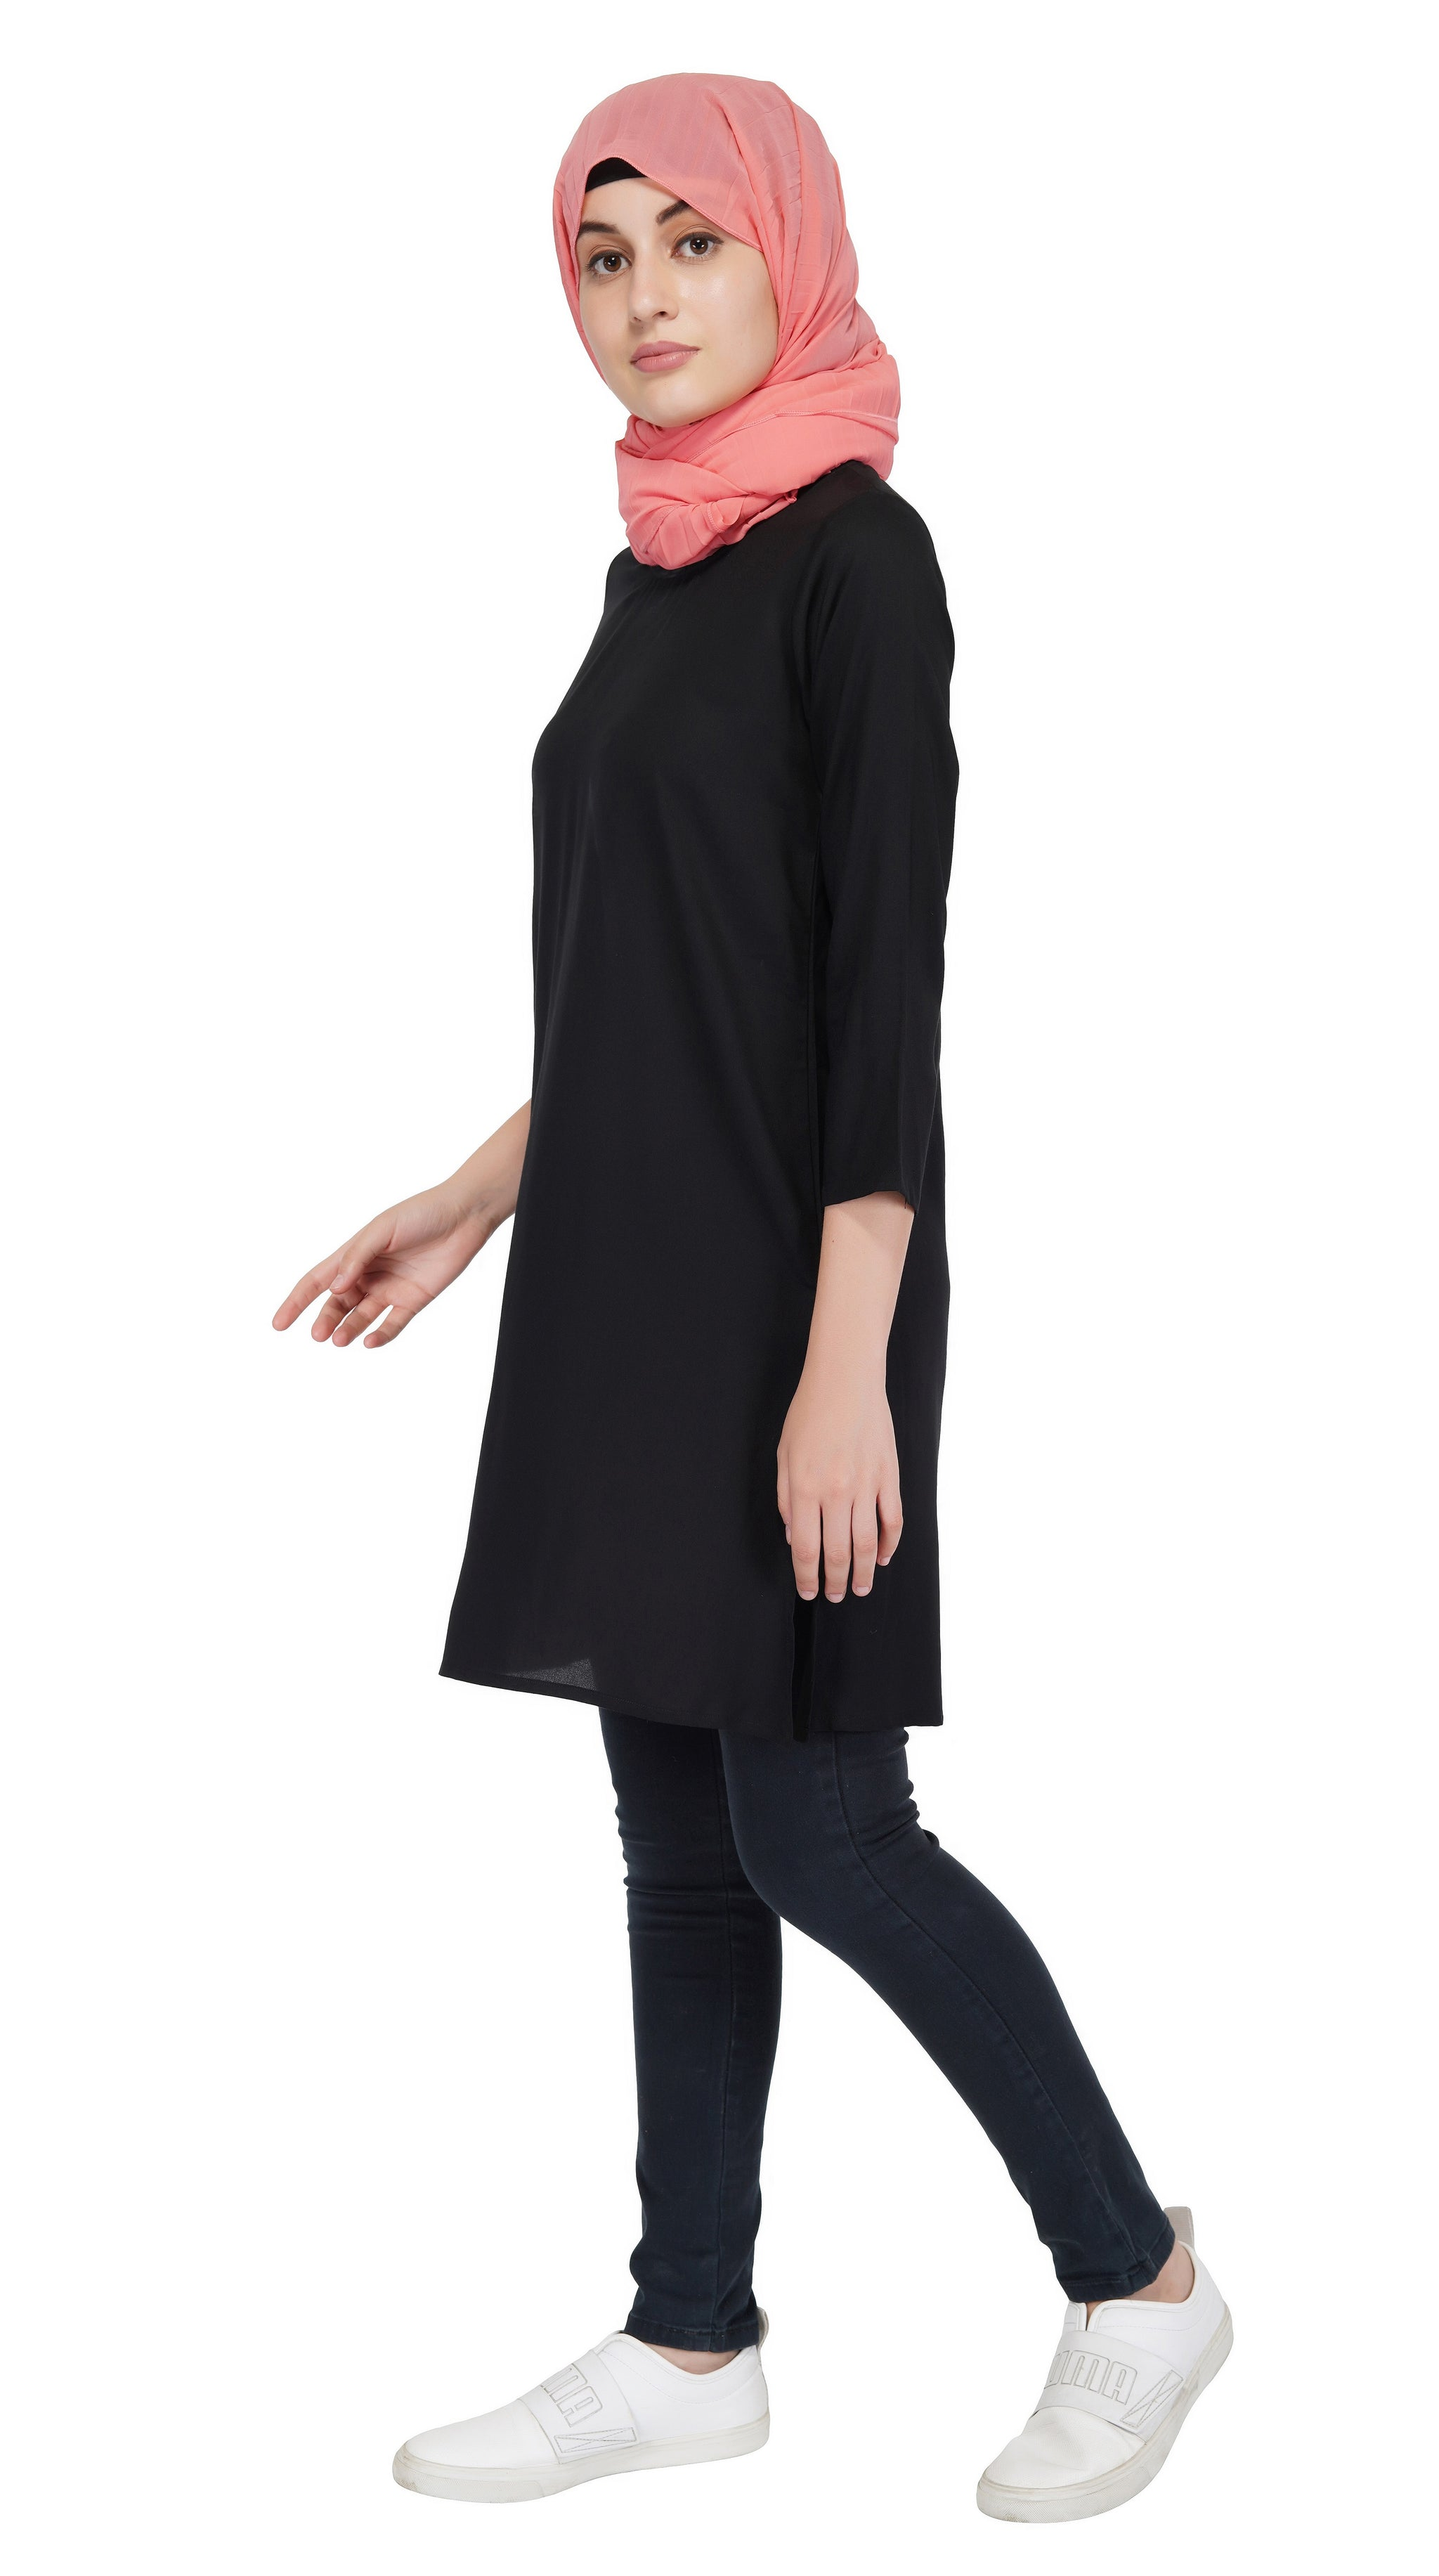 Ruqsar Moonlit Wave Trench Coat and Basics Black Tunic Combo